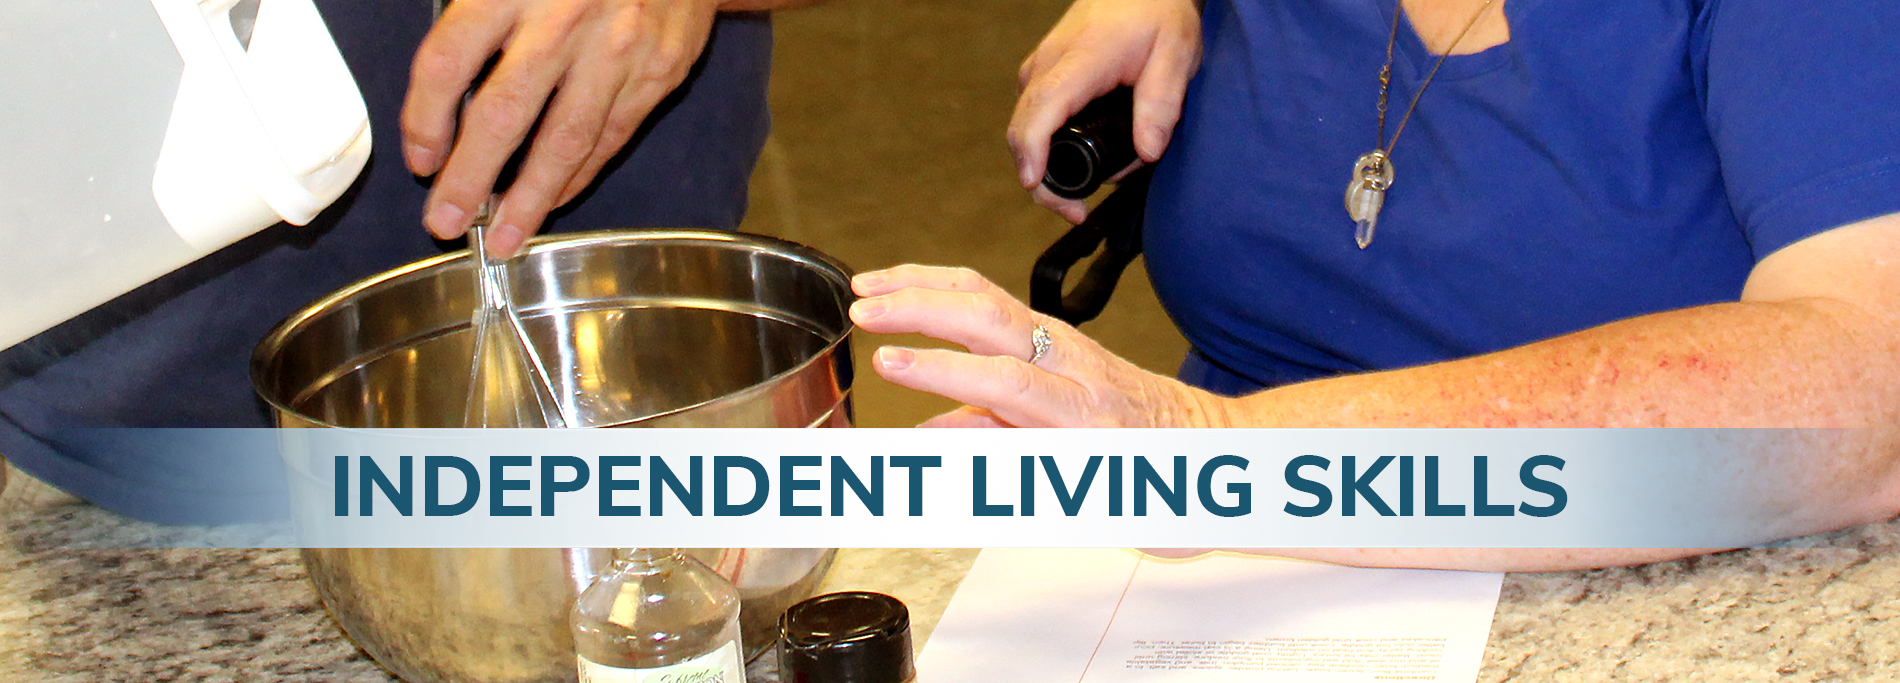 Independent Living Skills - Header